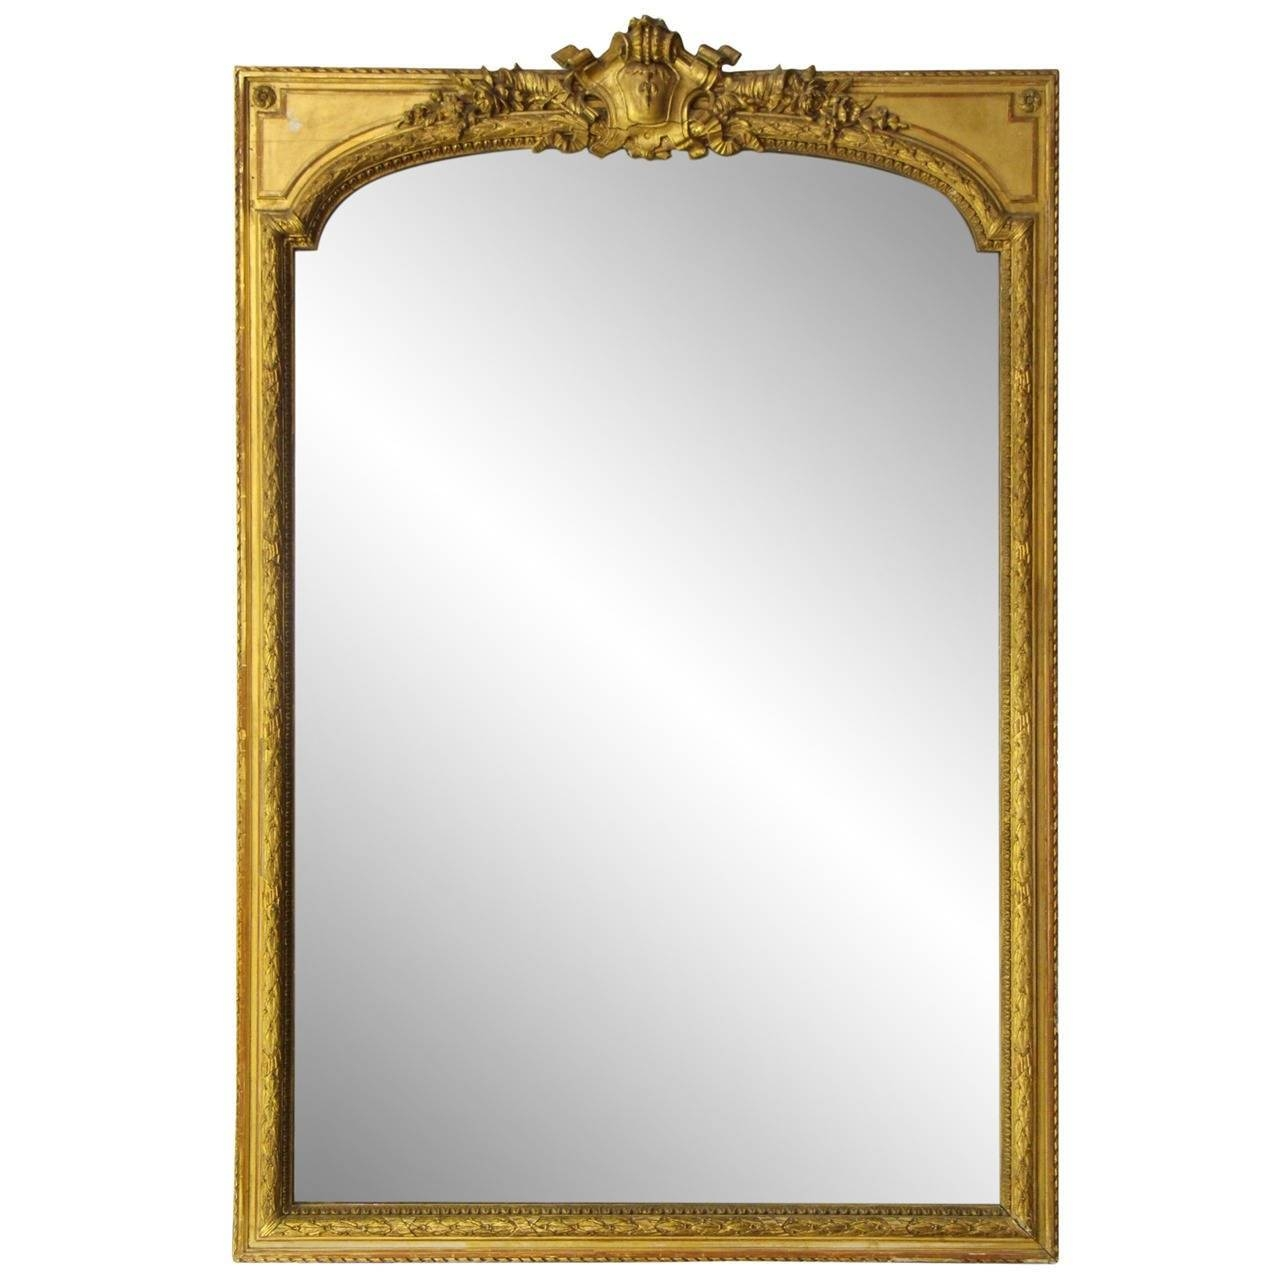 Late 1800S French Gold Gilt Ornate Mirror For Sale At 1Stdibs with Gold Arch Mirrors (Image 16 of 25)